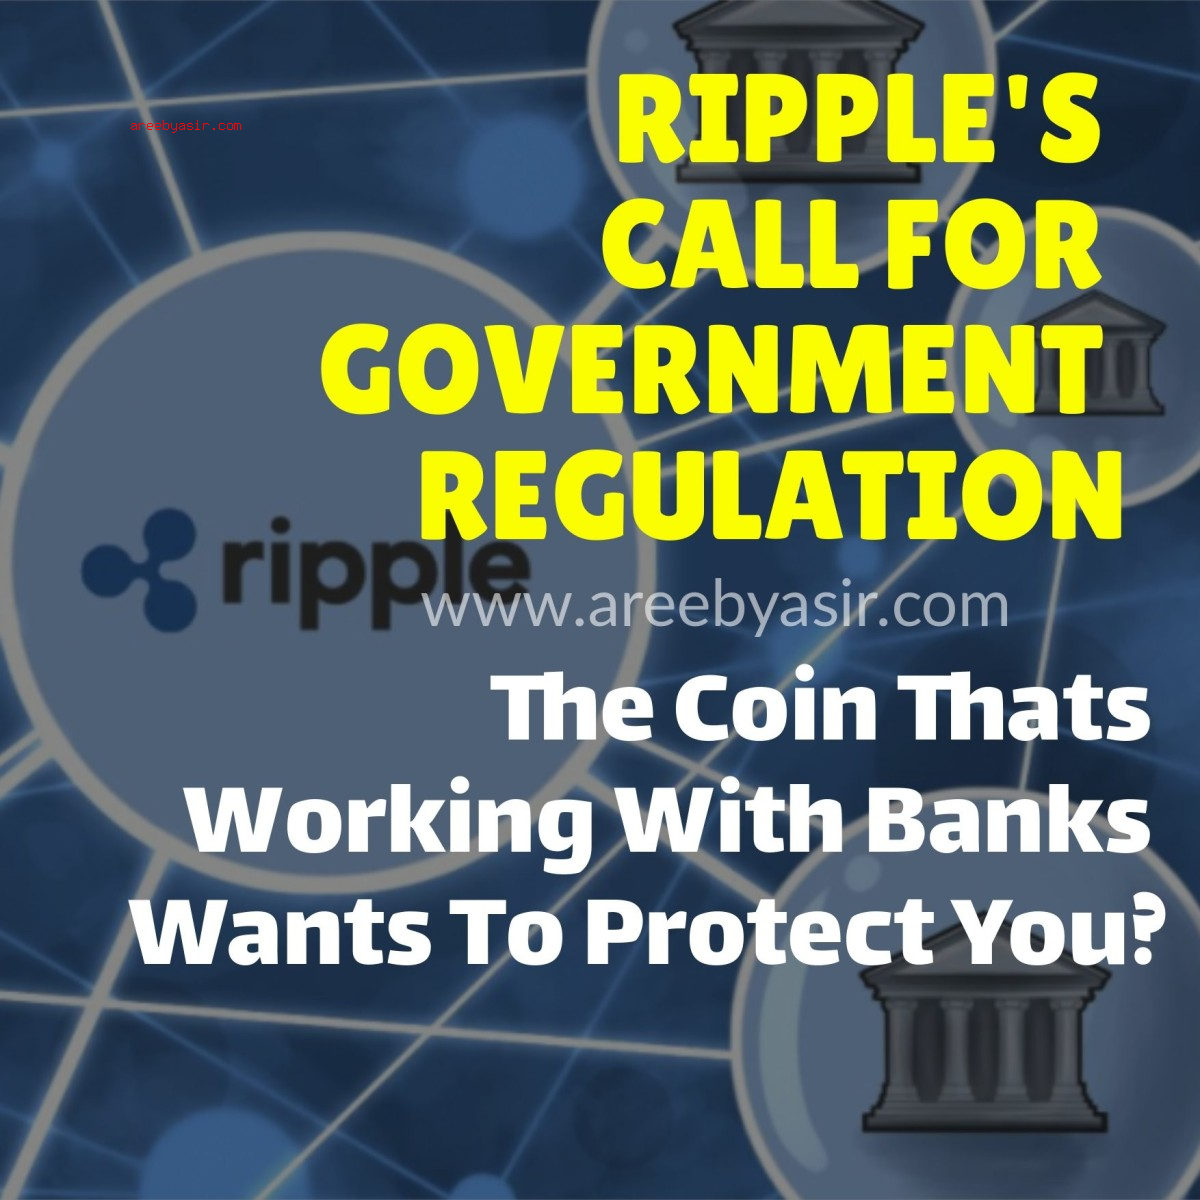 Ripple Wants Government Regulation of Cryptocurrency